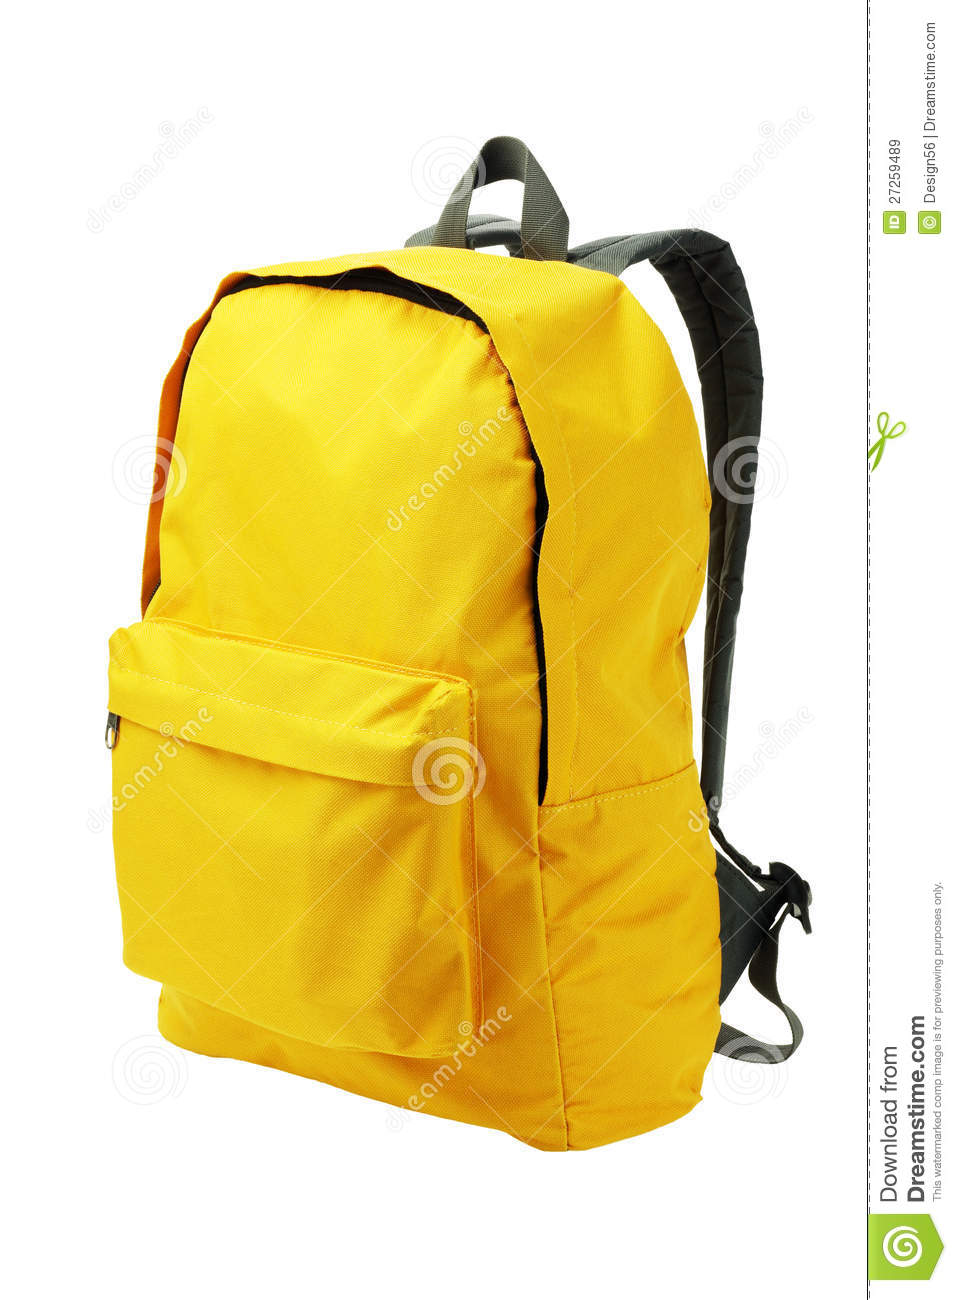 Yellow Backpack Standing on White Background.